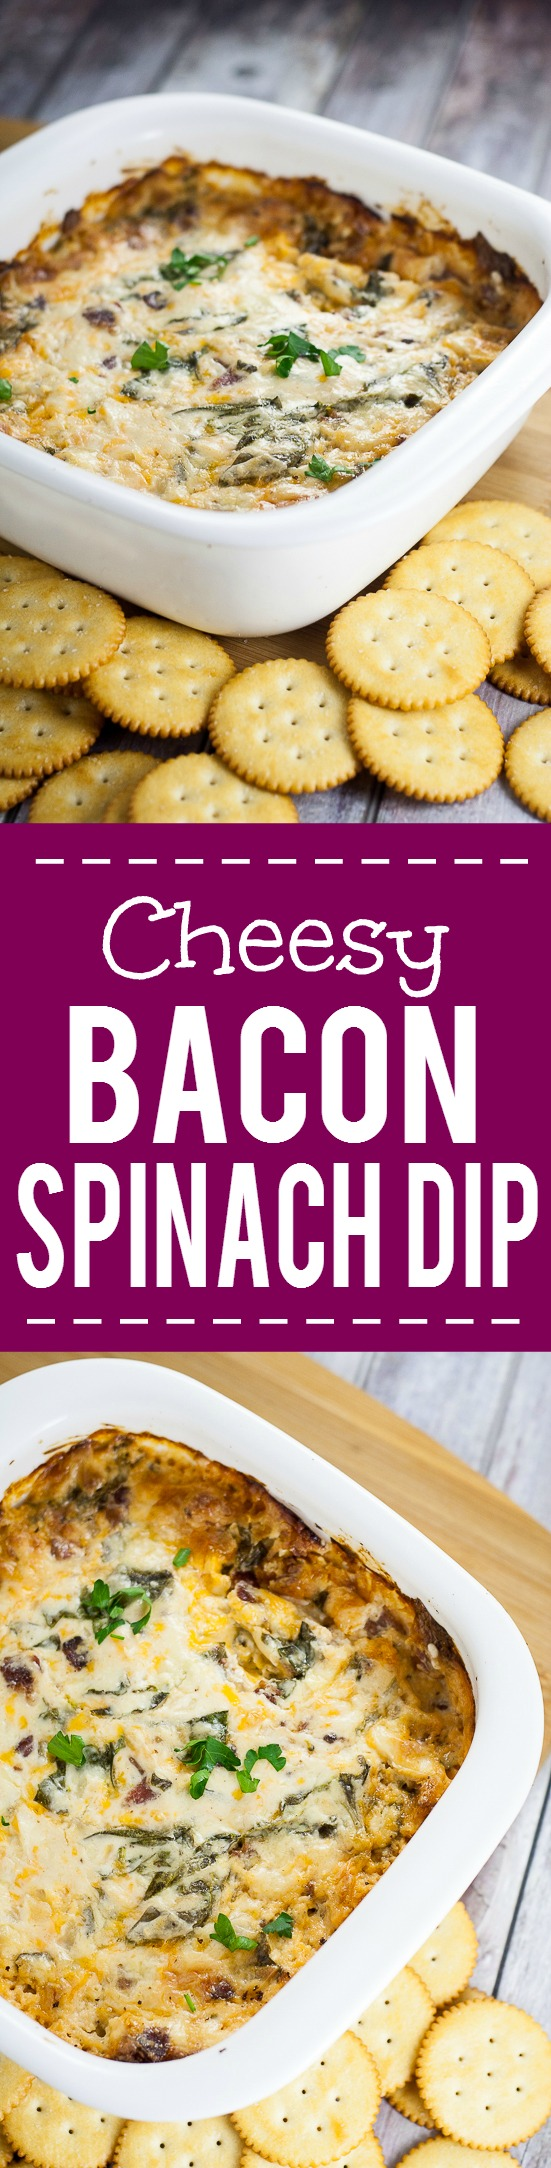 Cheesy Bacon Spinach Dip recipe -Quick, easy, and especially tasty, this Cheesy Bacon Spinach Dip recipe takes just 30 minutes to make, can be made ahead, and is a perfect cozy dip for your next party or gathering! Great easy appetizer recipe for a crowd!